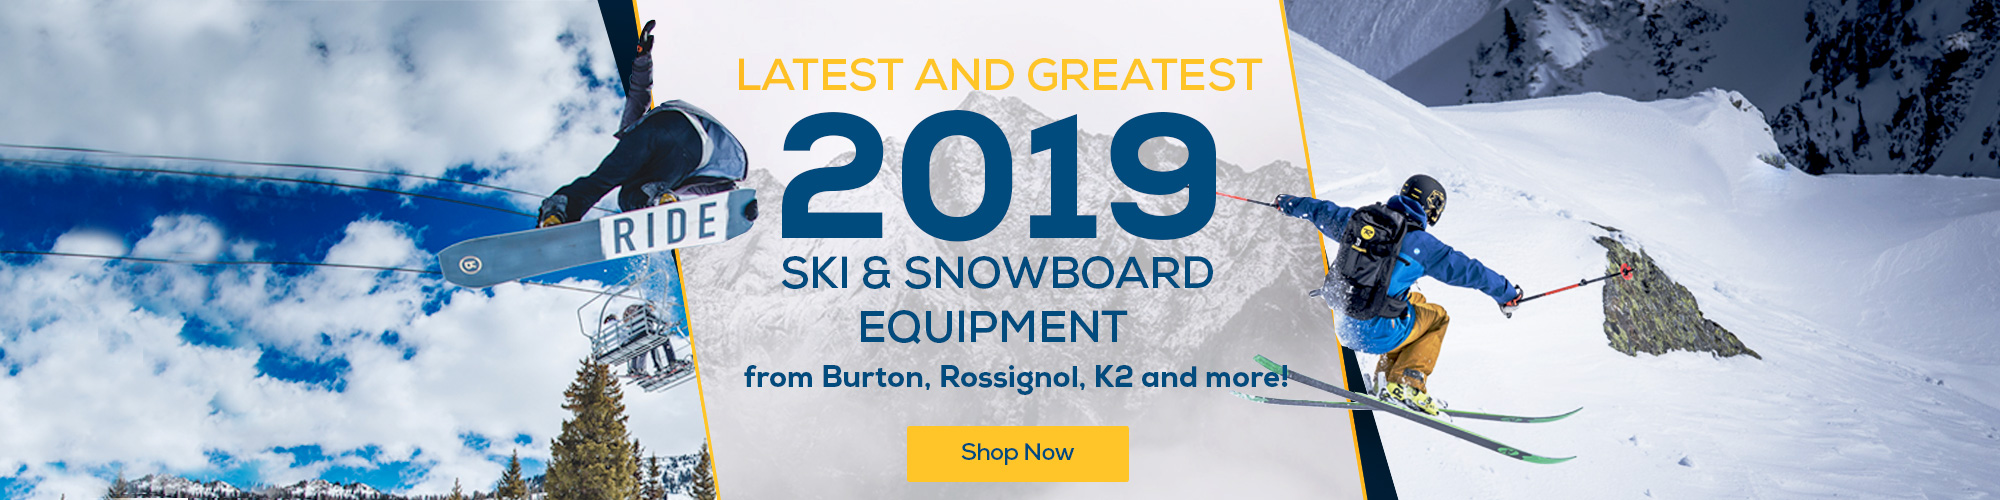 The latest and greatest 2019 ski and snowboard equipment.